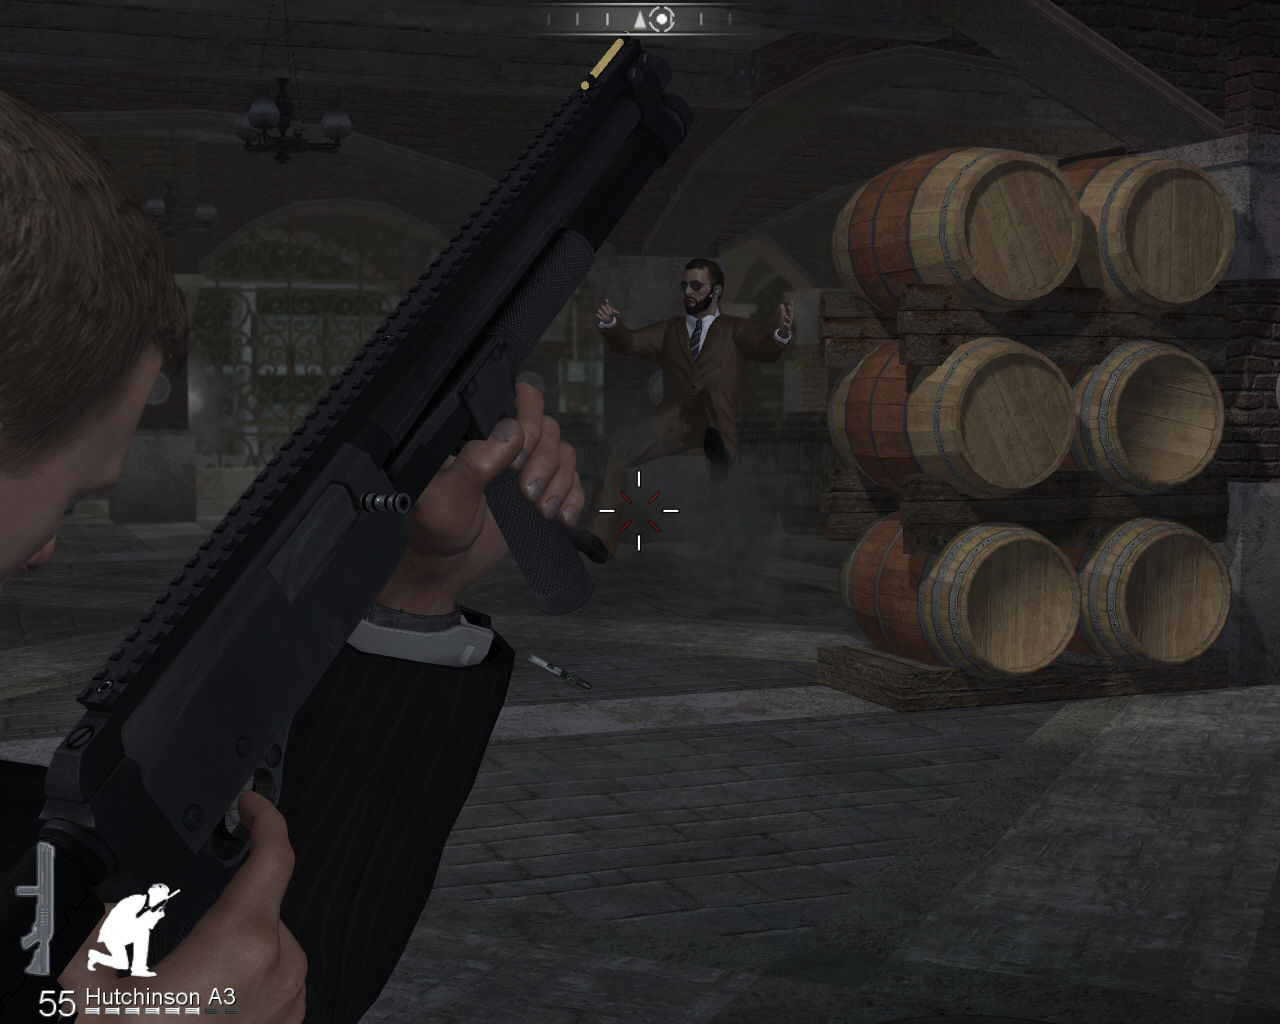 007: Quantum of Solace Windows Shotgun is a powerful weapon.